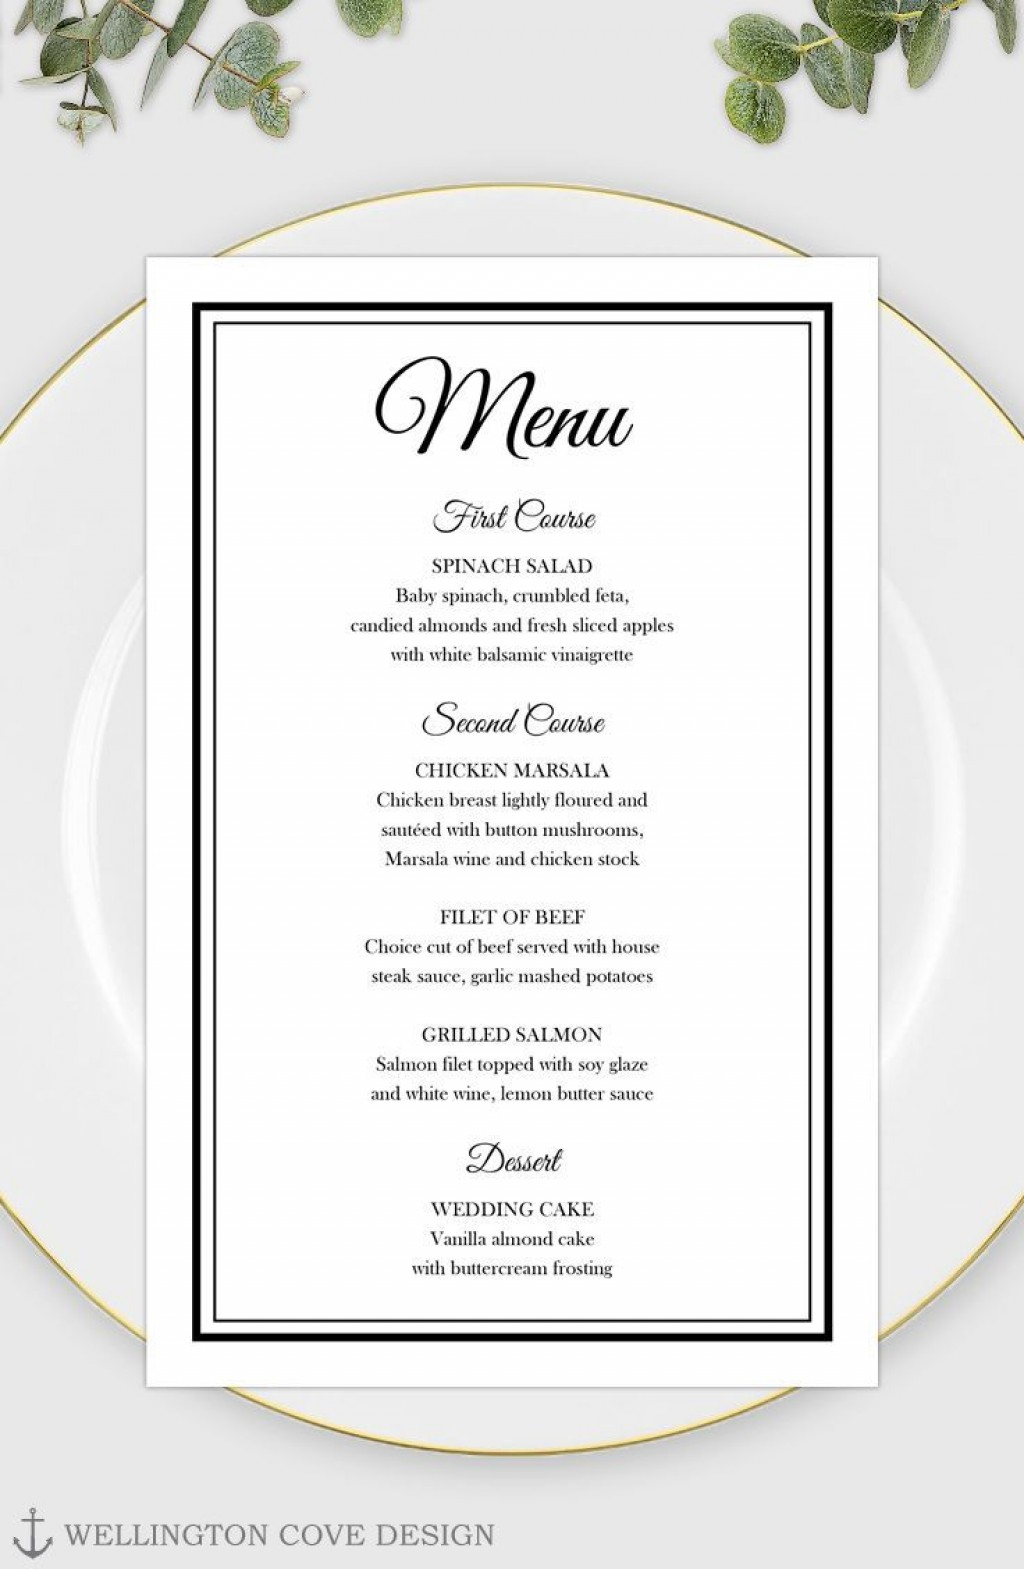 004 Archaicawful Free Online Wedding Menu Template Highest Clarity  TemplatesLarge